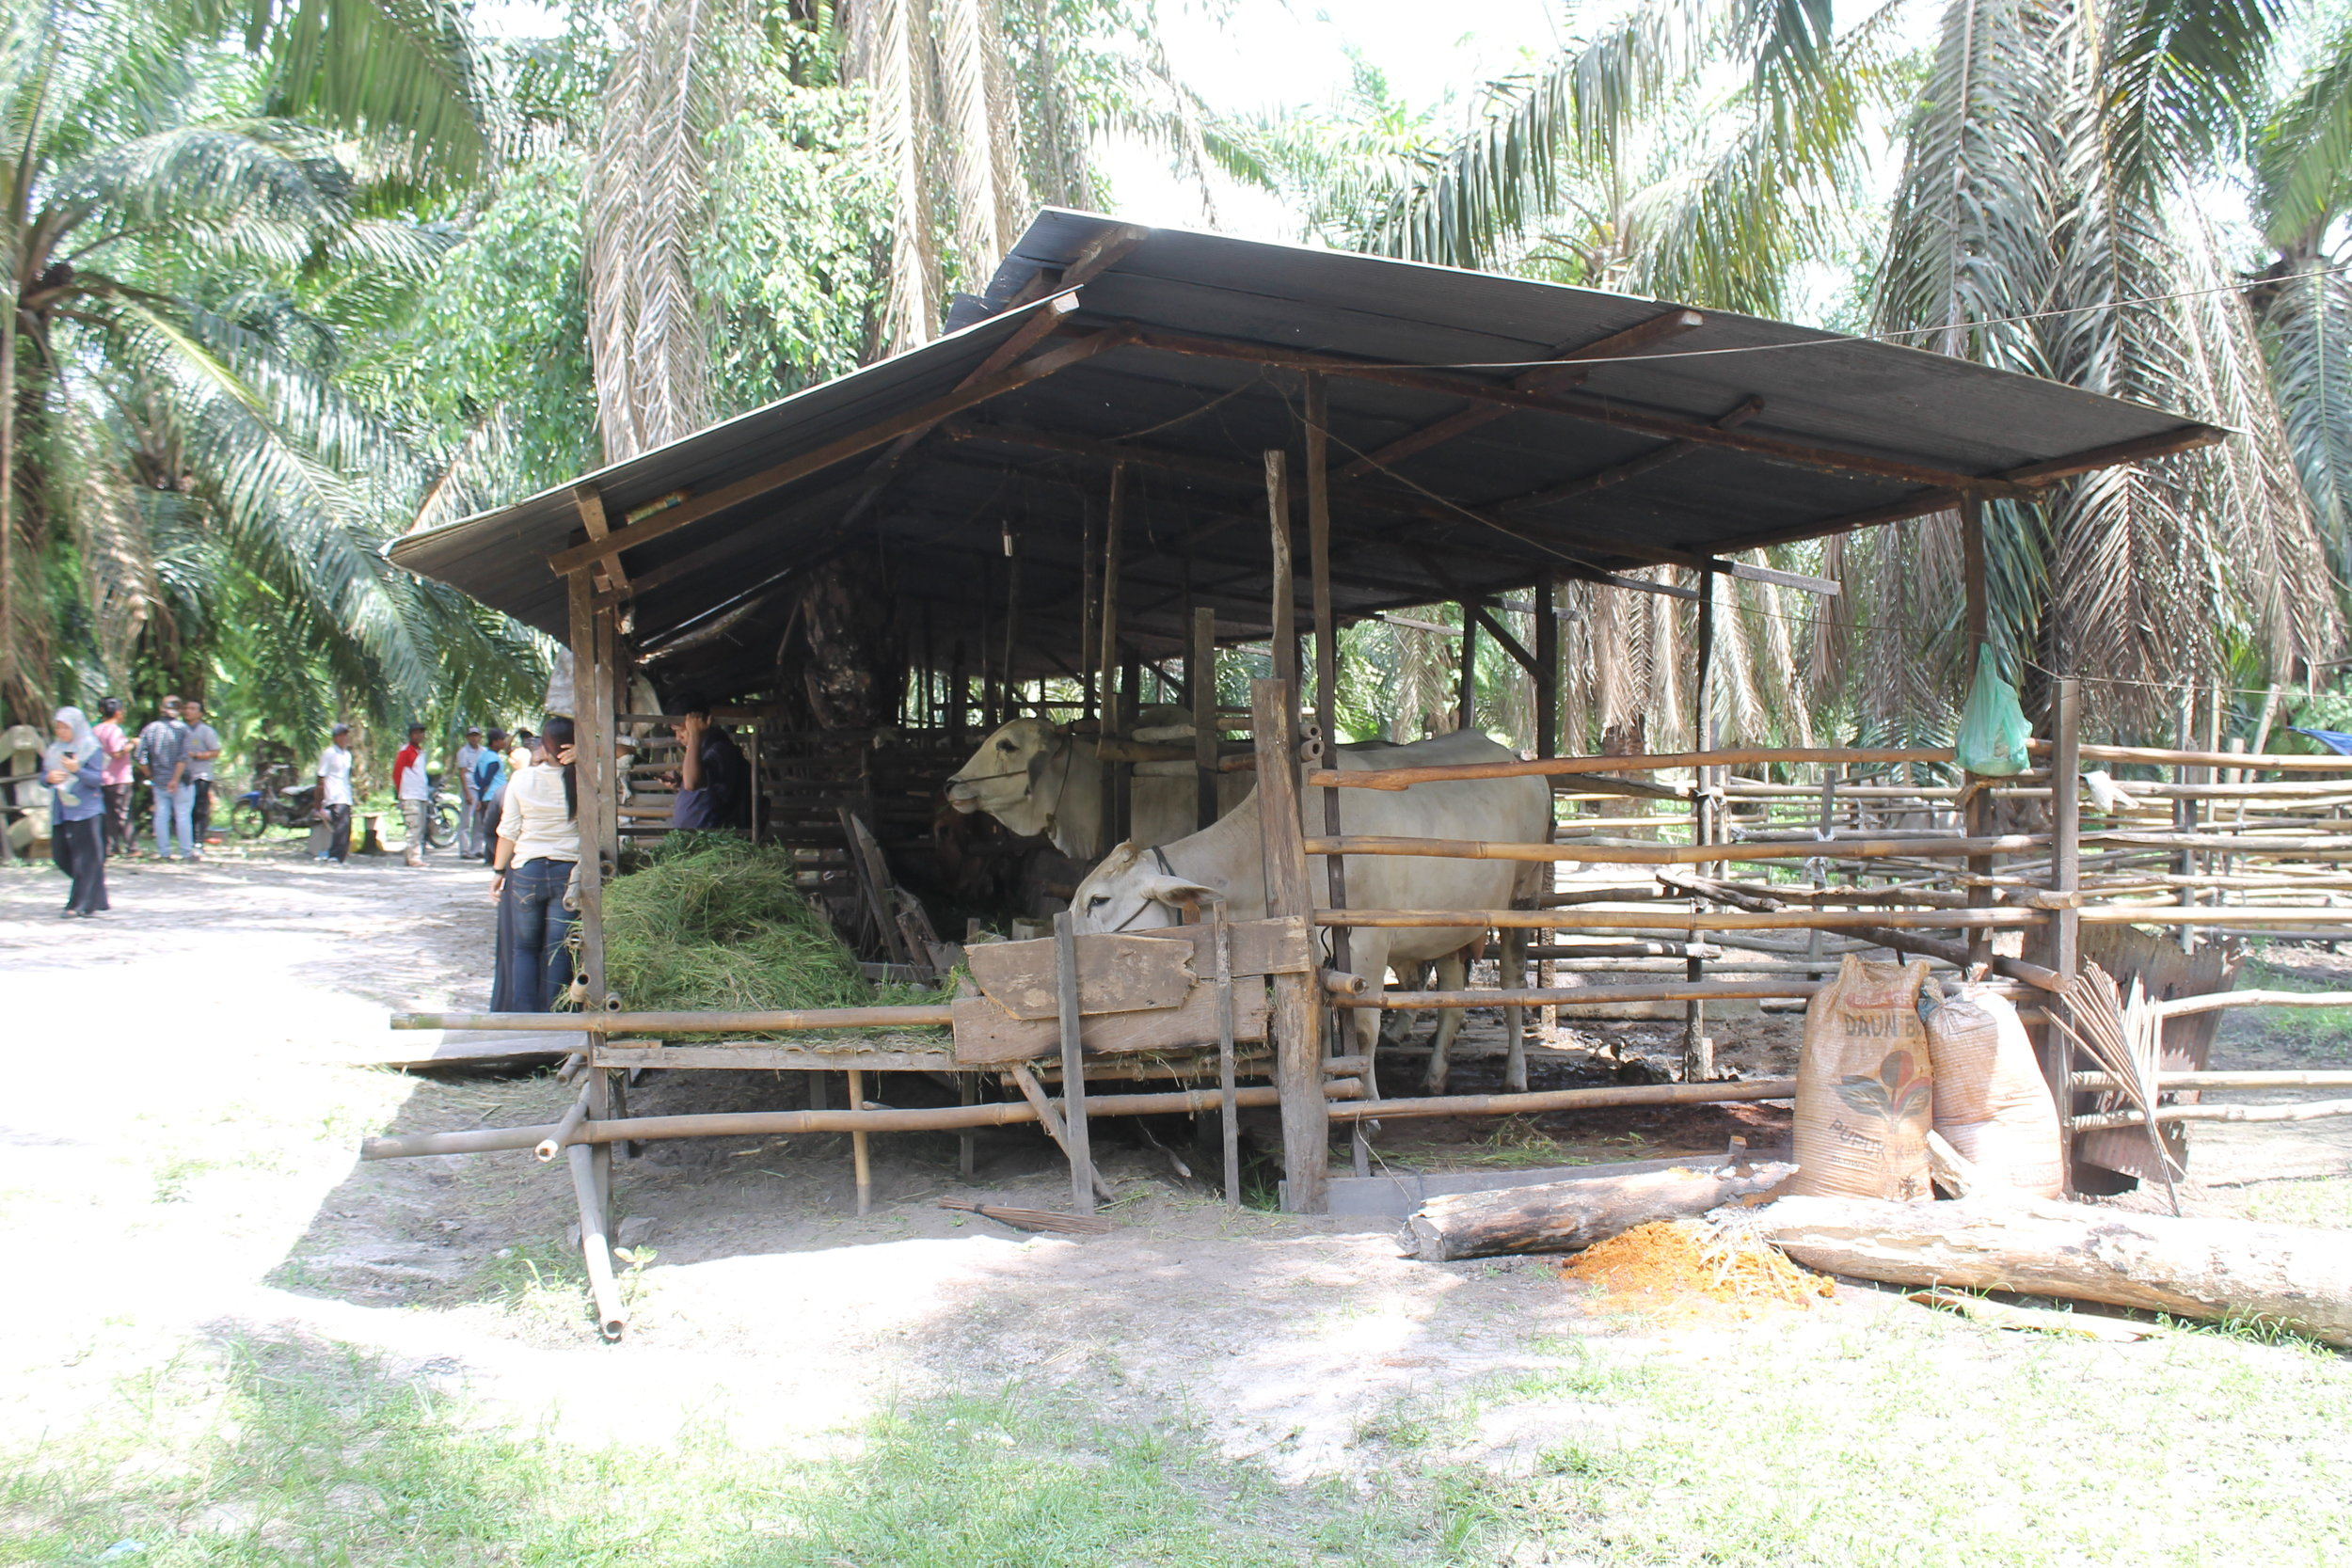 A breedlot kendang in Sumber Makmur village, East Kalimantan.